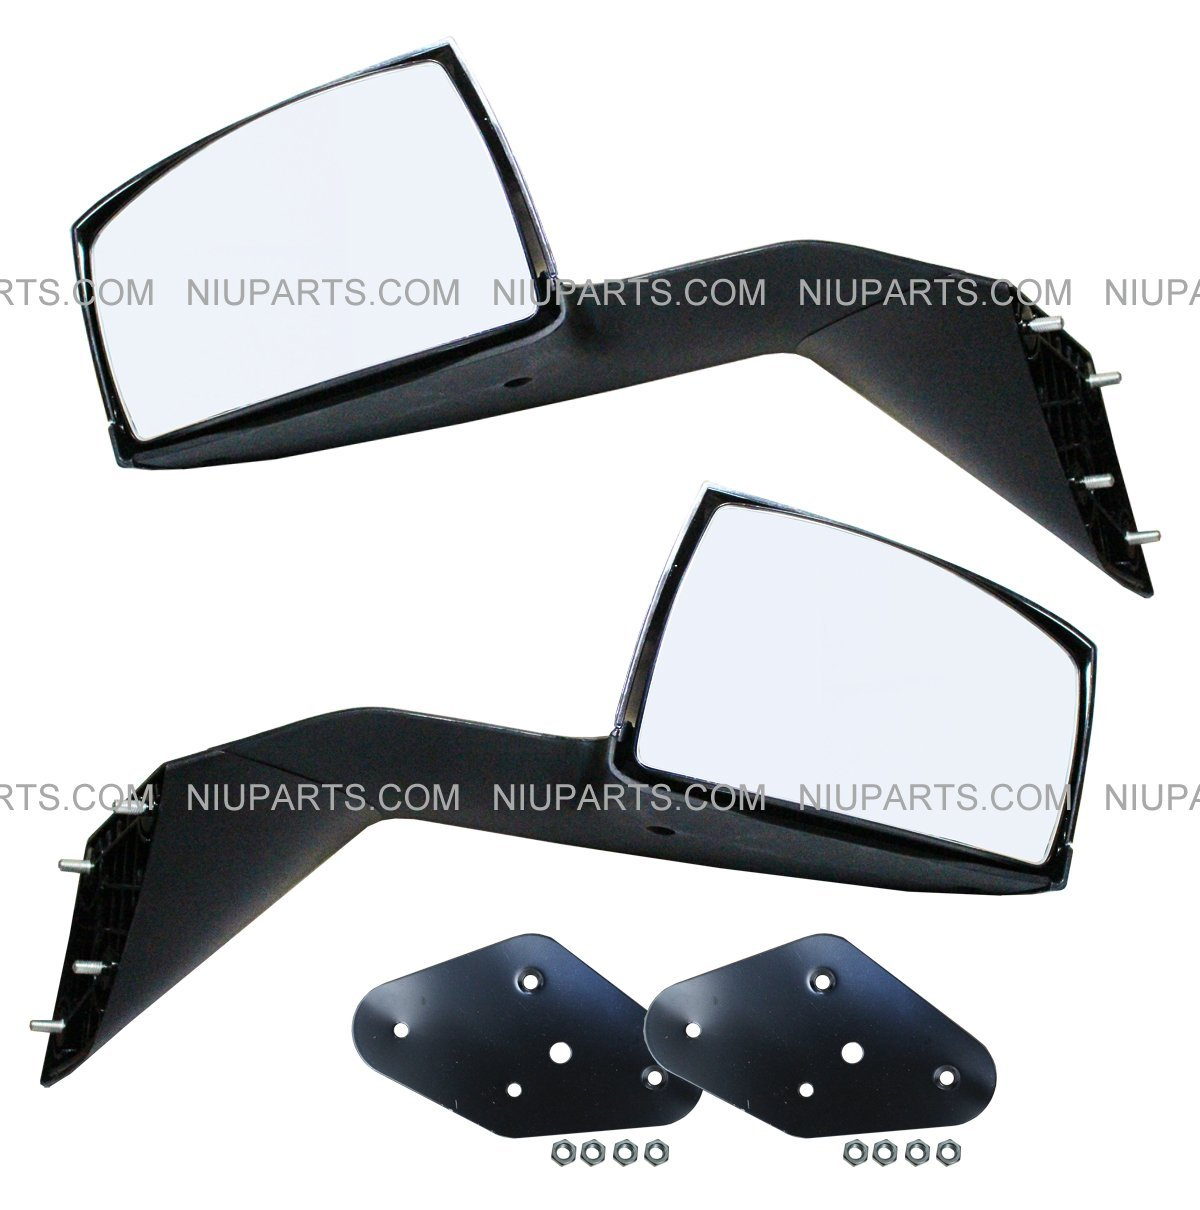 Hood Mirror Chrome Driver & Passenger Side with Mounting Kits (Fit: Volvo VNL VNM Truck) NIUPARTS